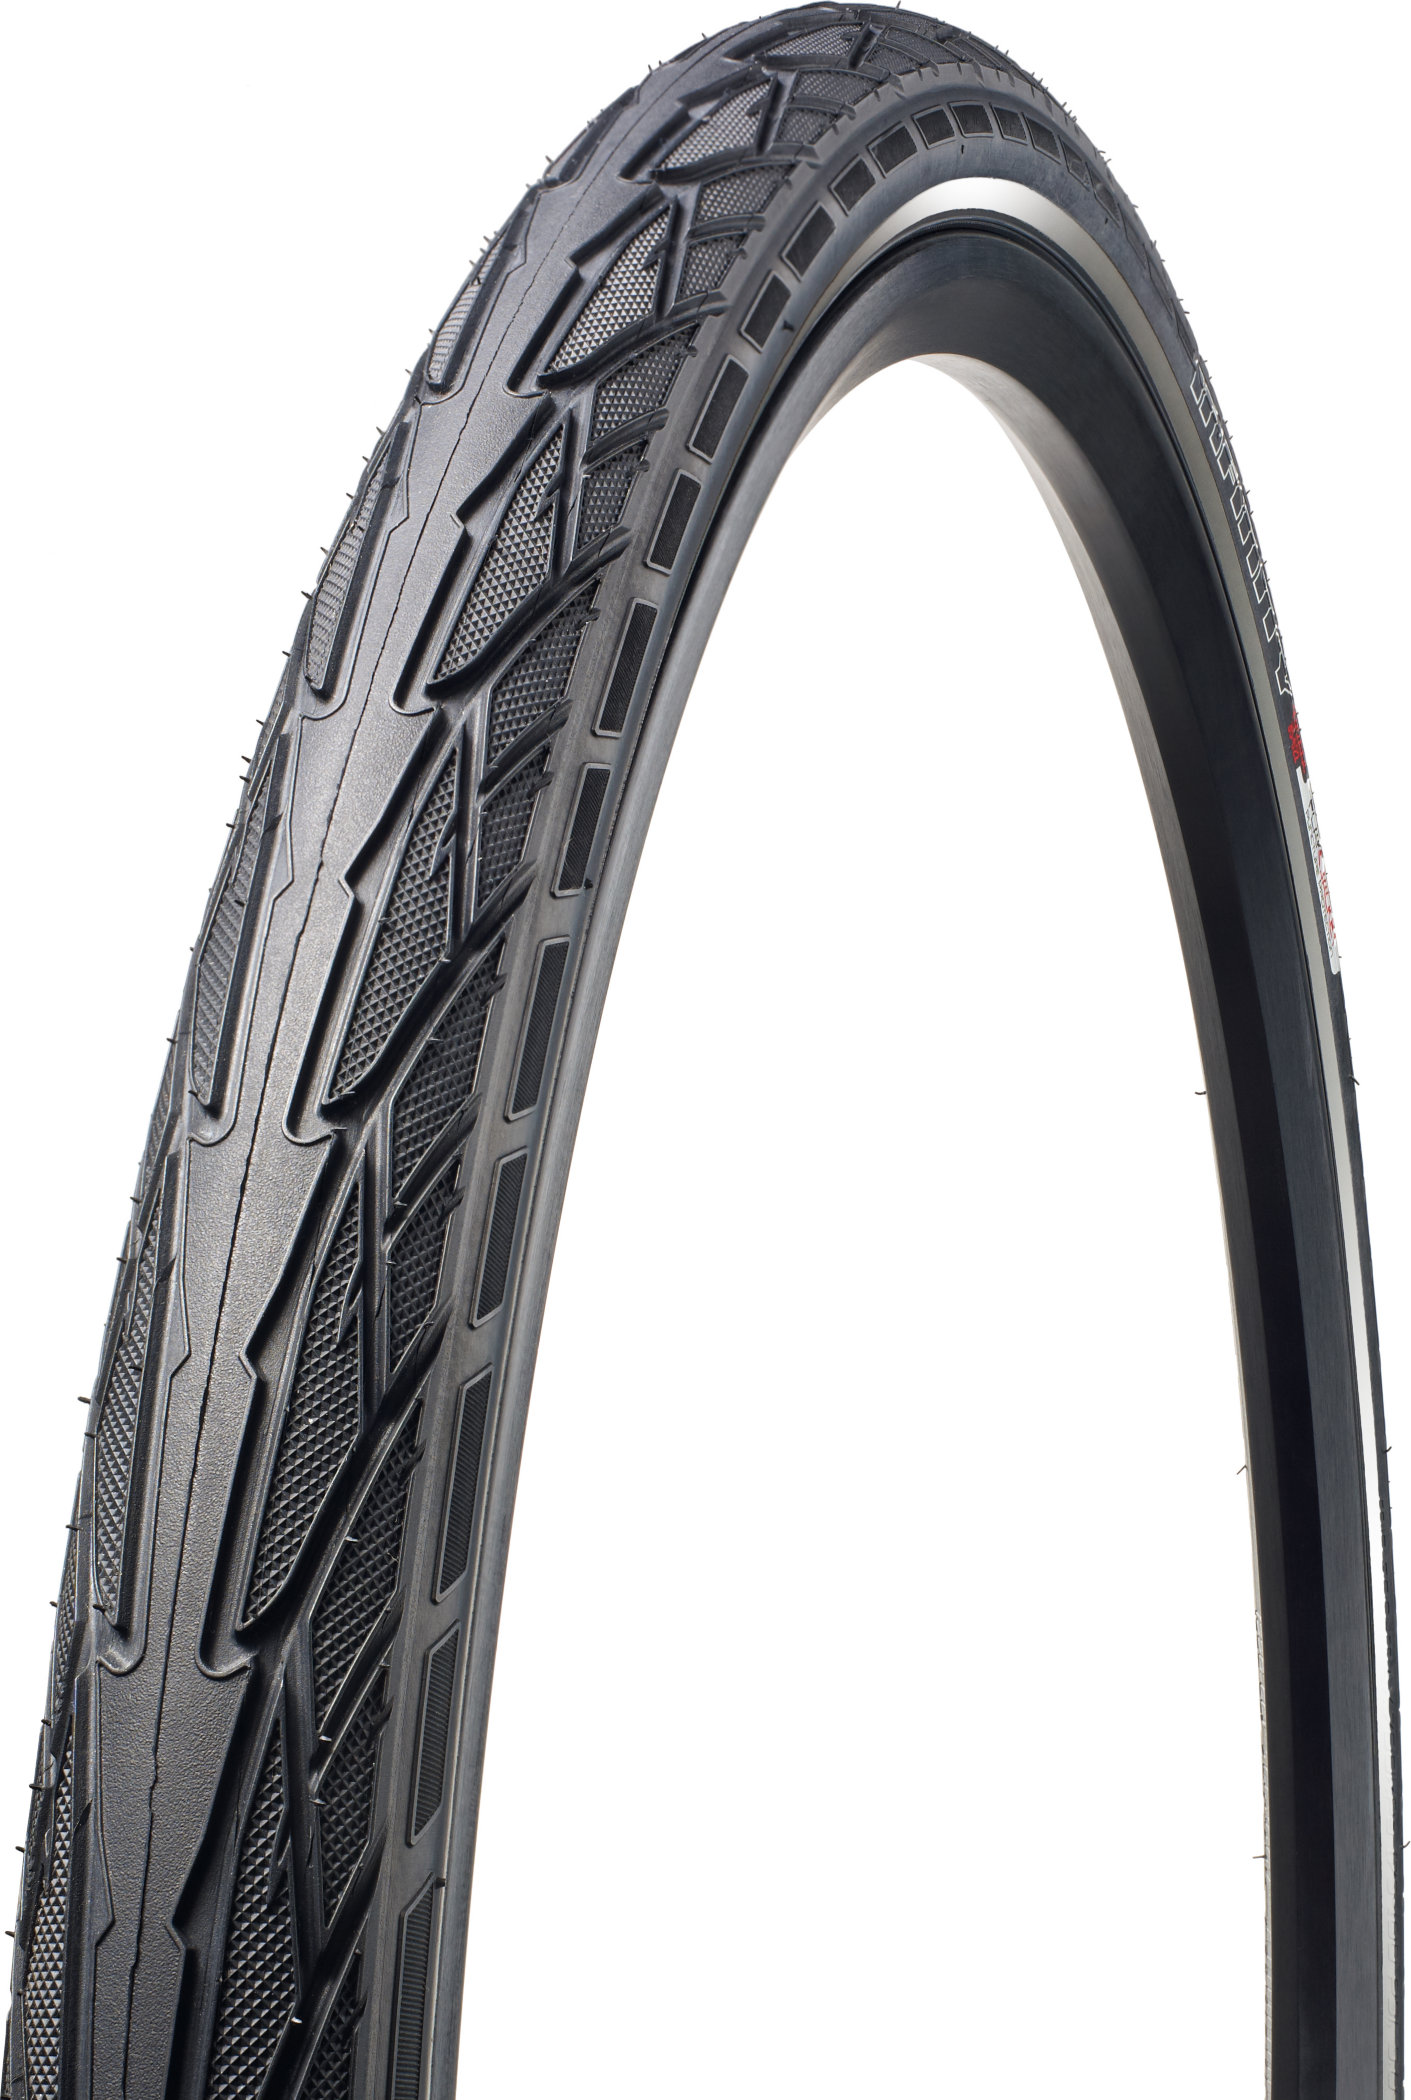 SPECIALIZED INFINITY ARM REFLECT TIRE 700X47C - Alpha Bikes